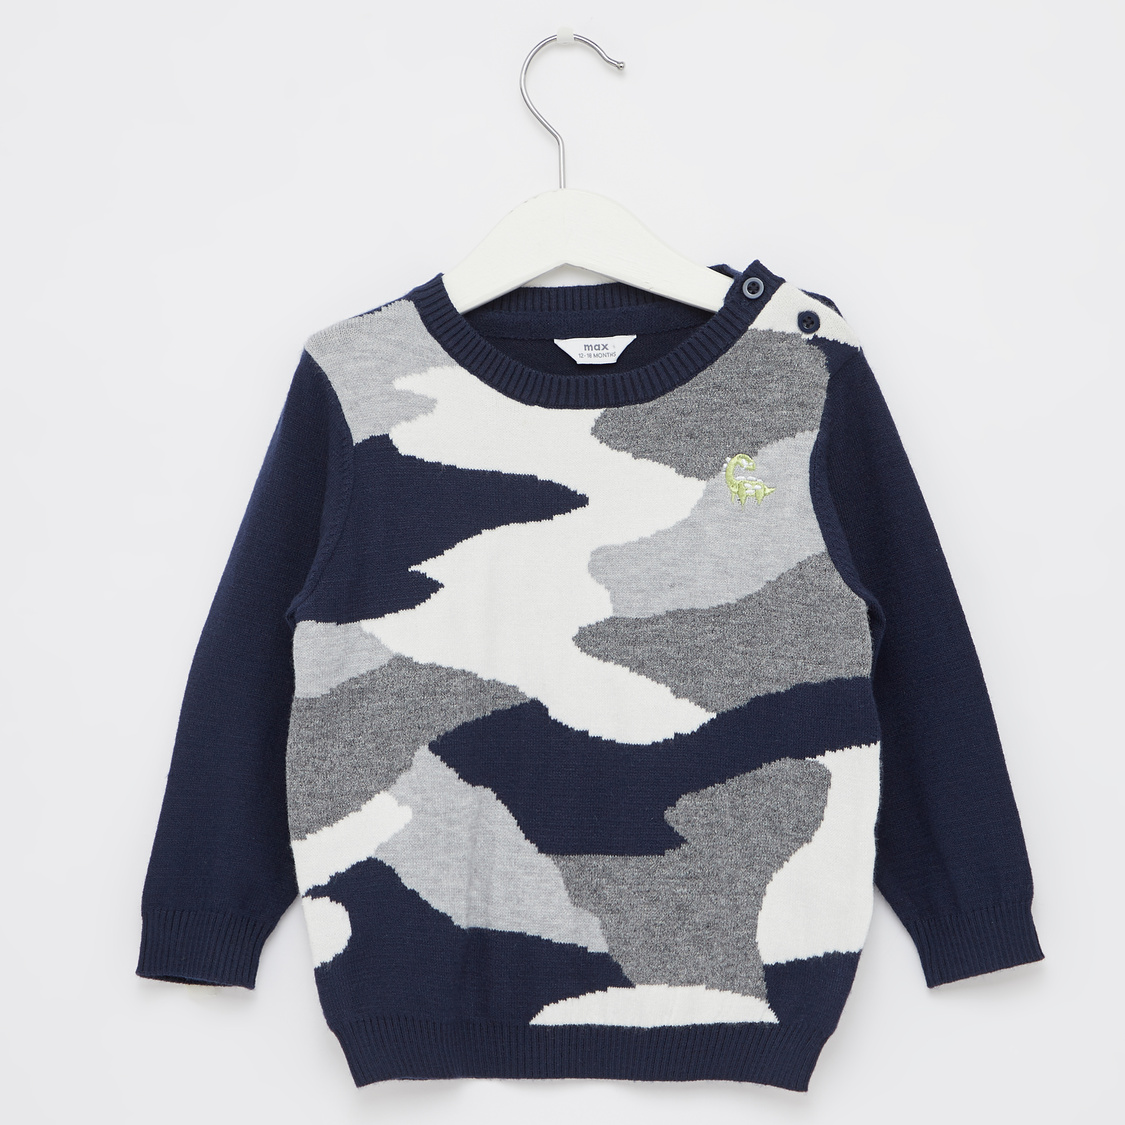 Camo Print Sweater with Round Neck and Long Sleeves